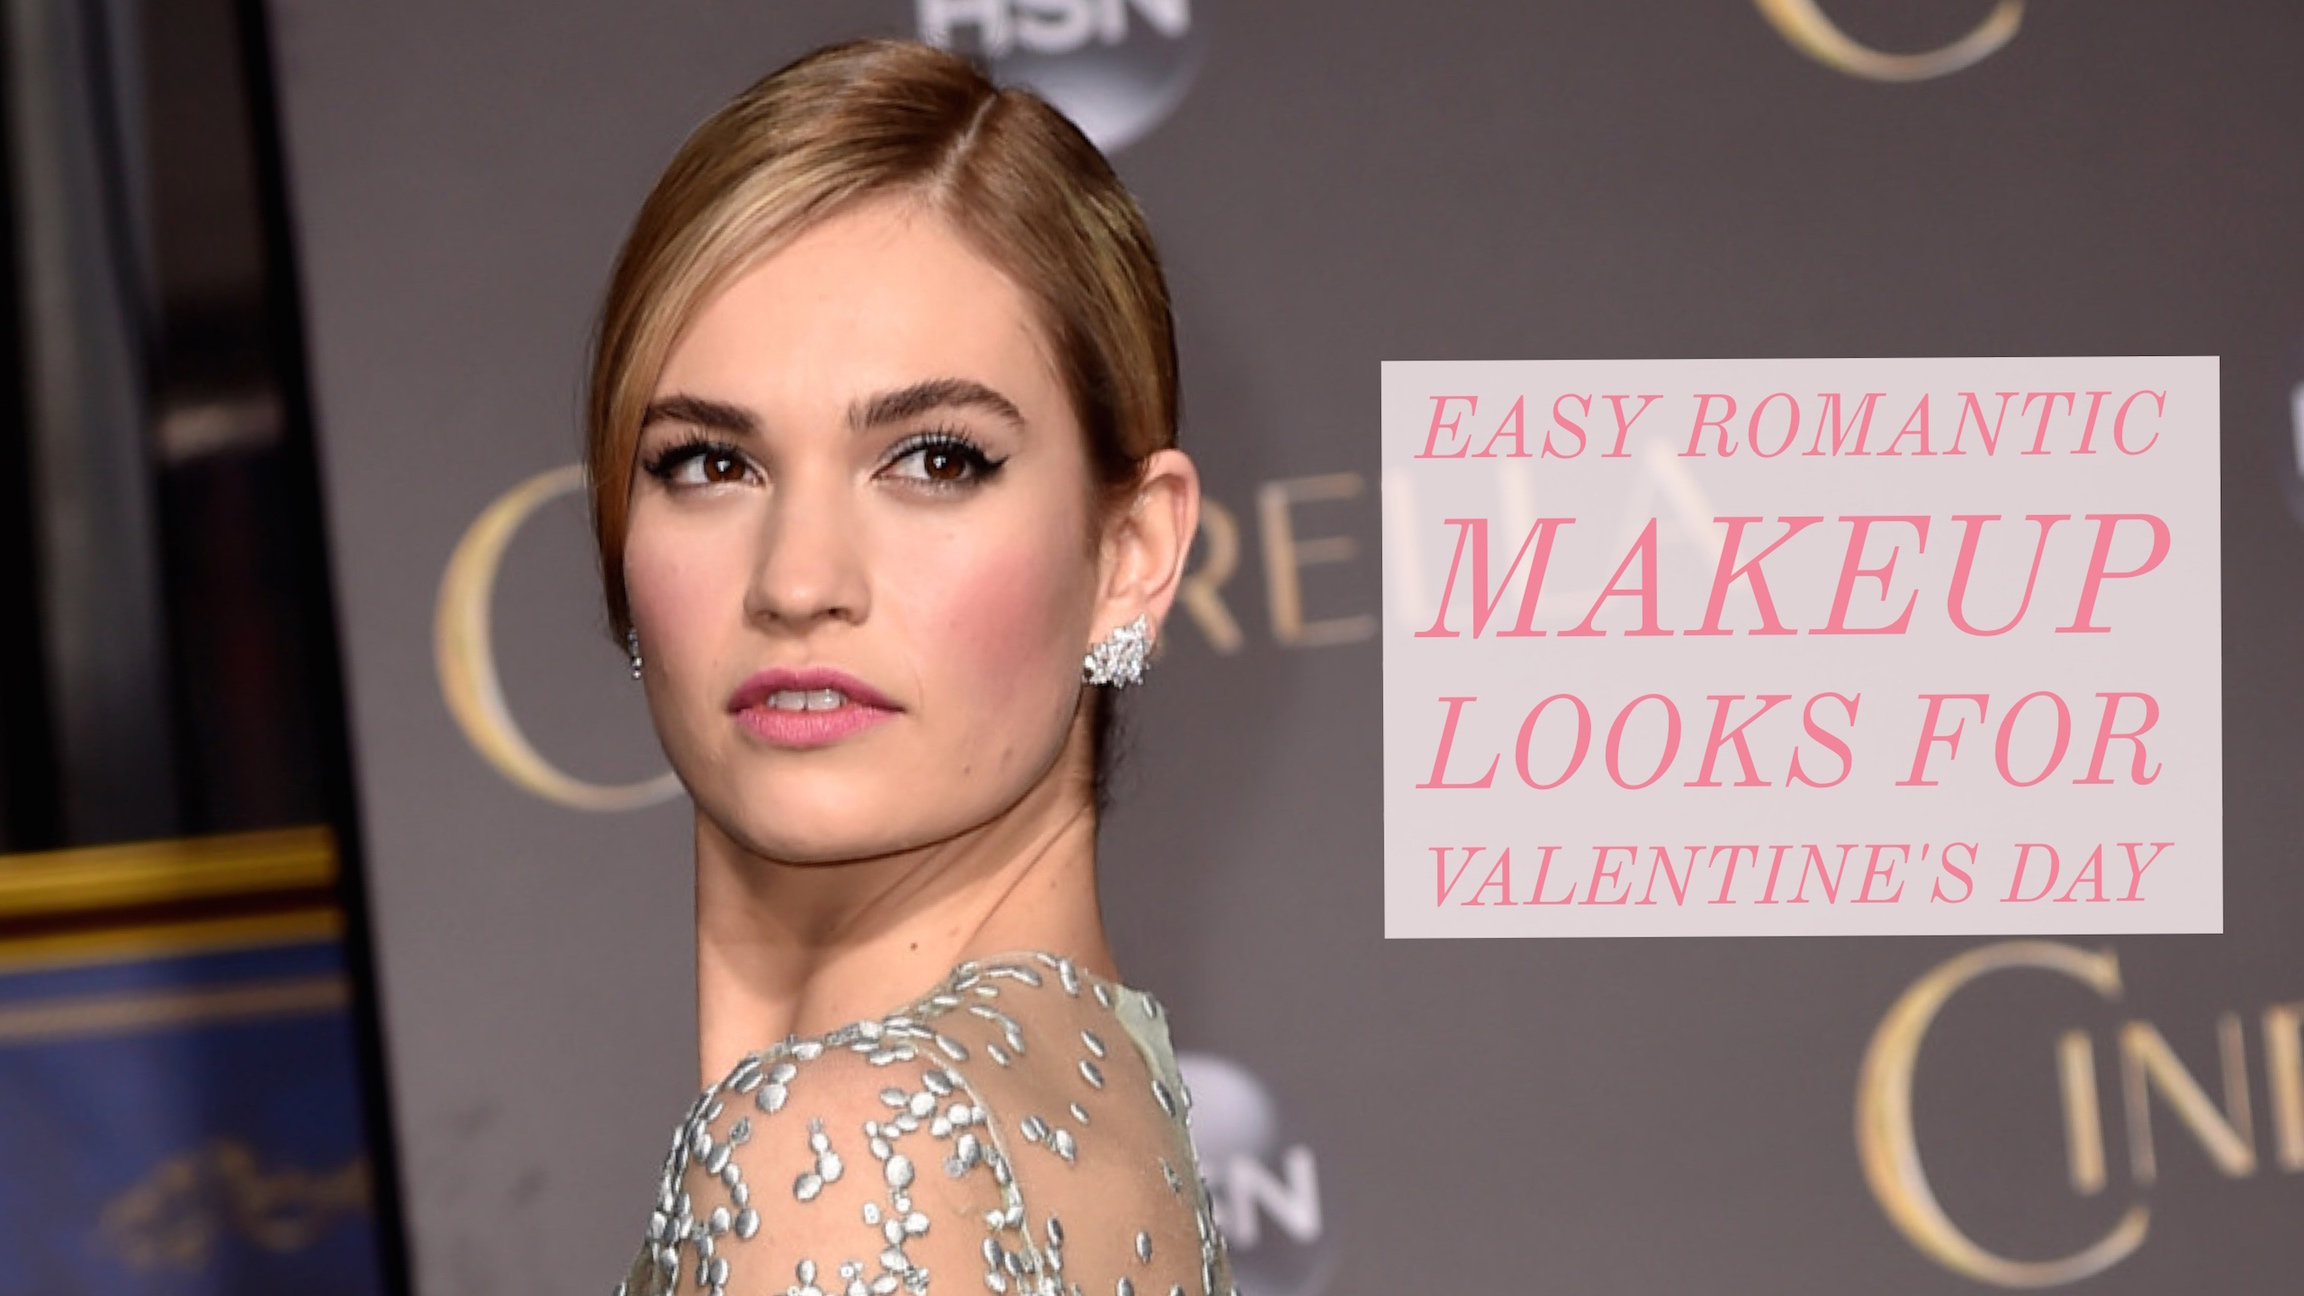 Easy Romantic Makeup Looks For Valentine's Day